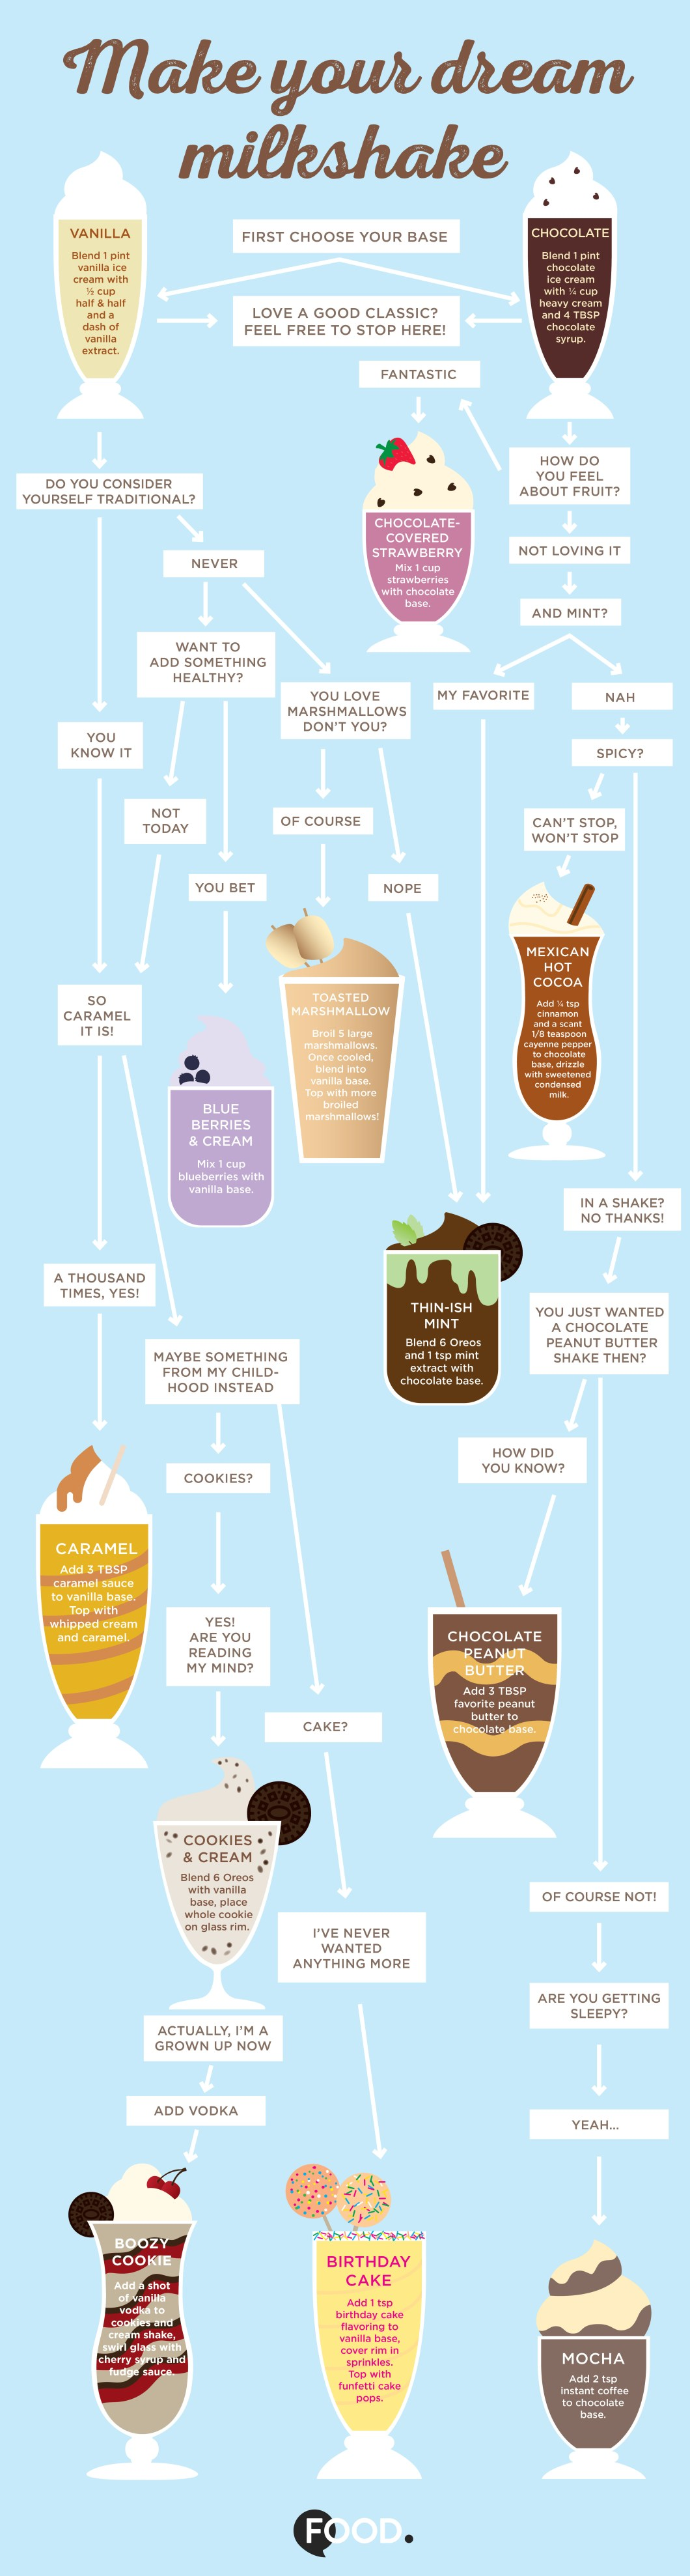 How to Create Your Own Dreamy Milkshakes - Infographic